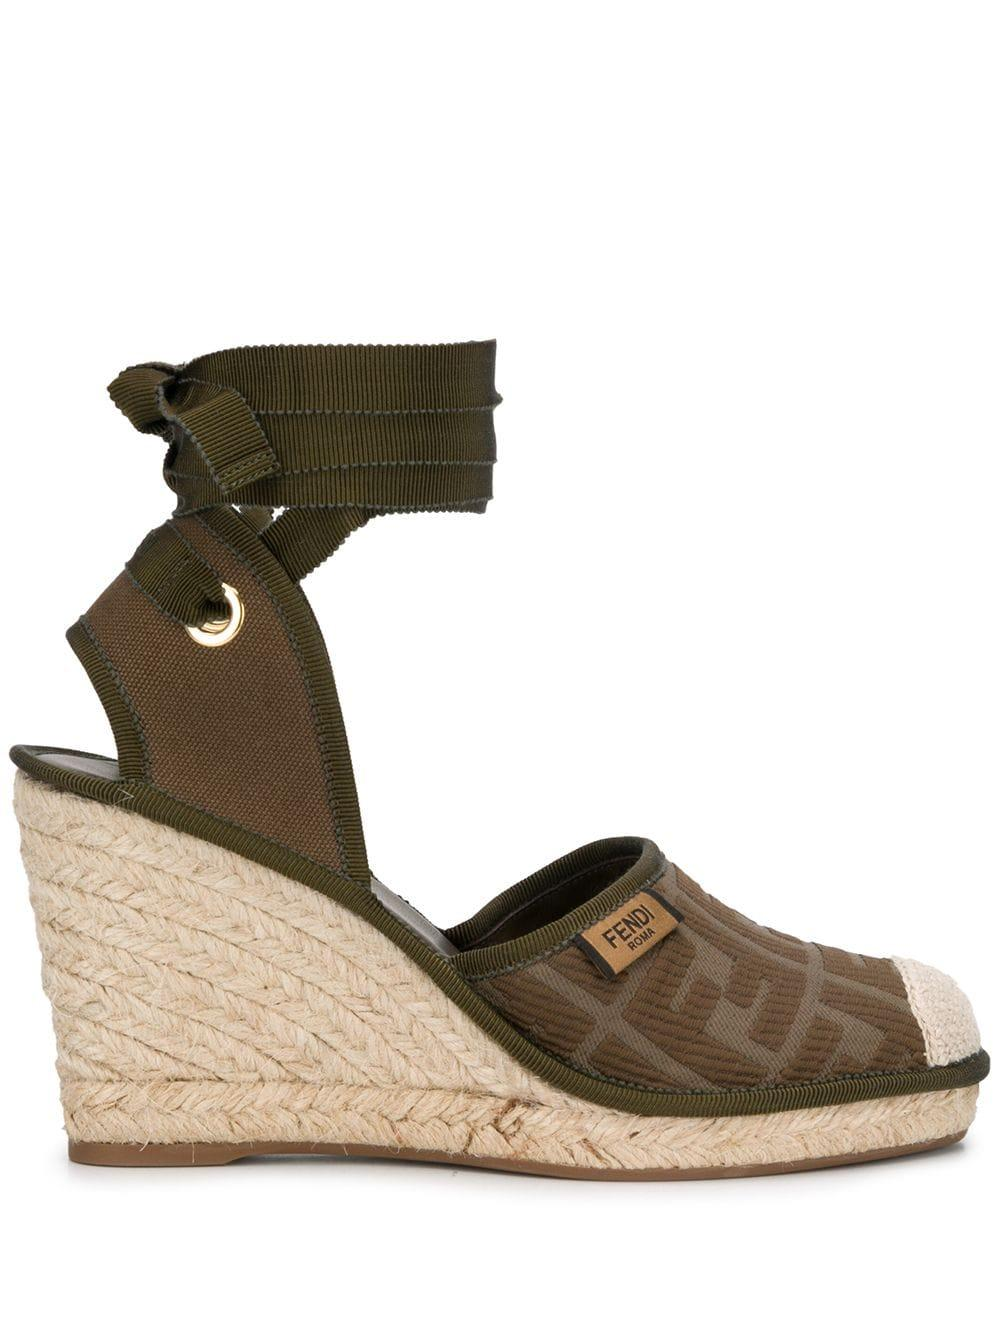 Wedge Espadrille With Ankle Tie Item # 8V7072-ABN2